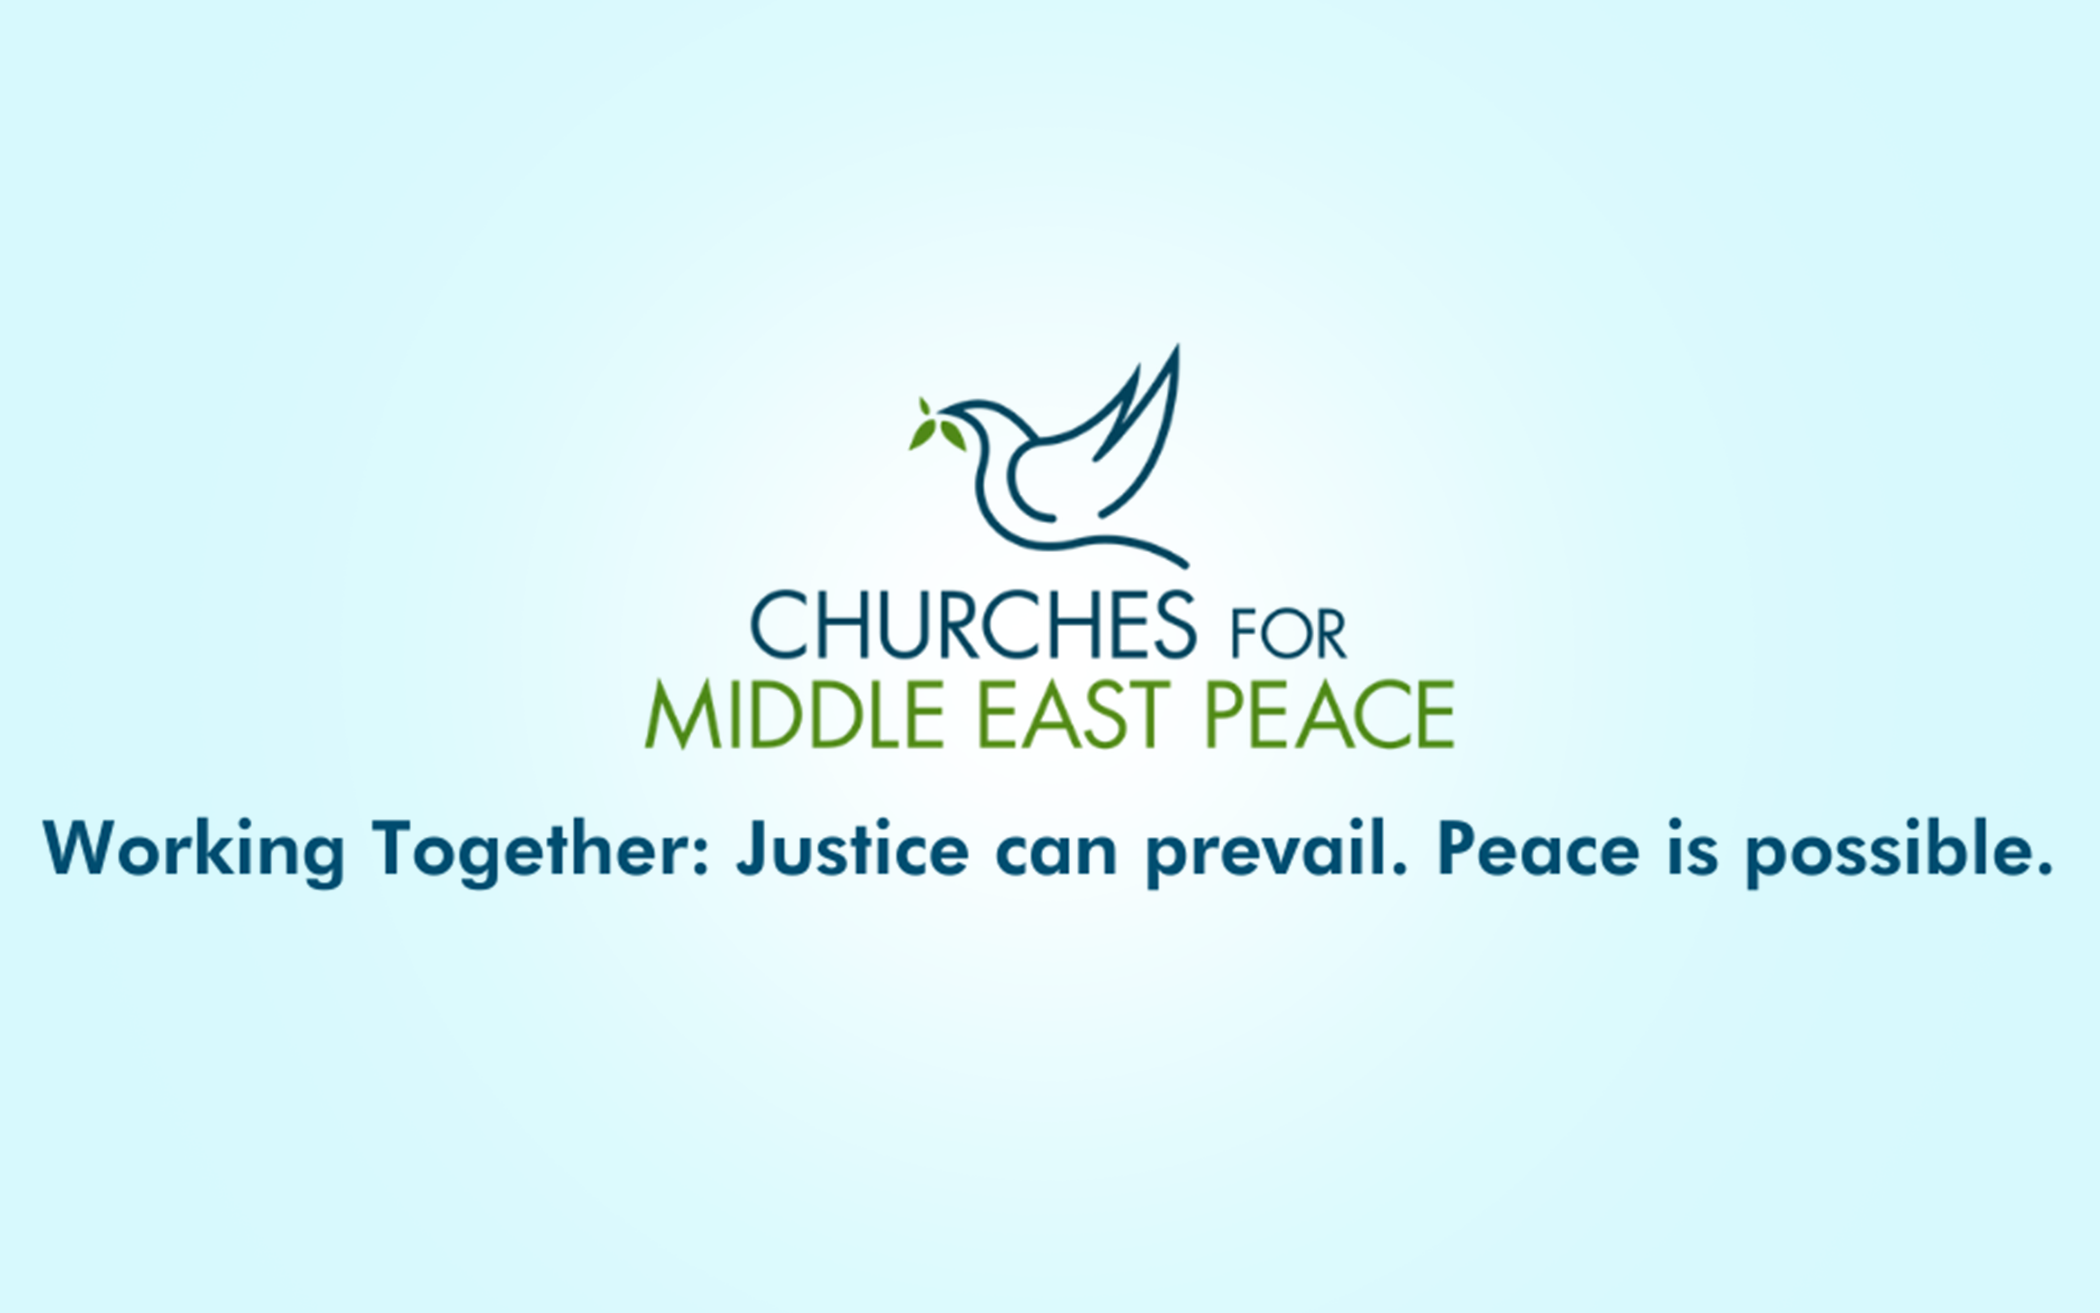 CRCNA Leaders Among Those to Sign Churches for Middle East Peace Advocacy Letter